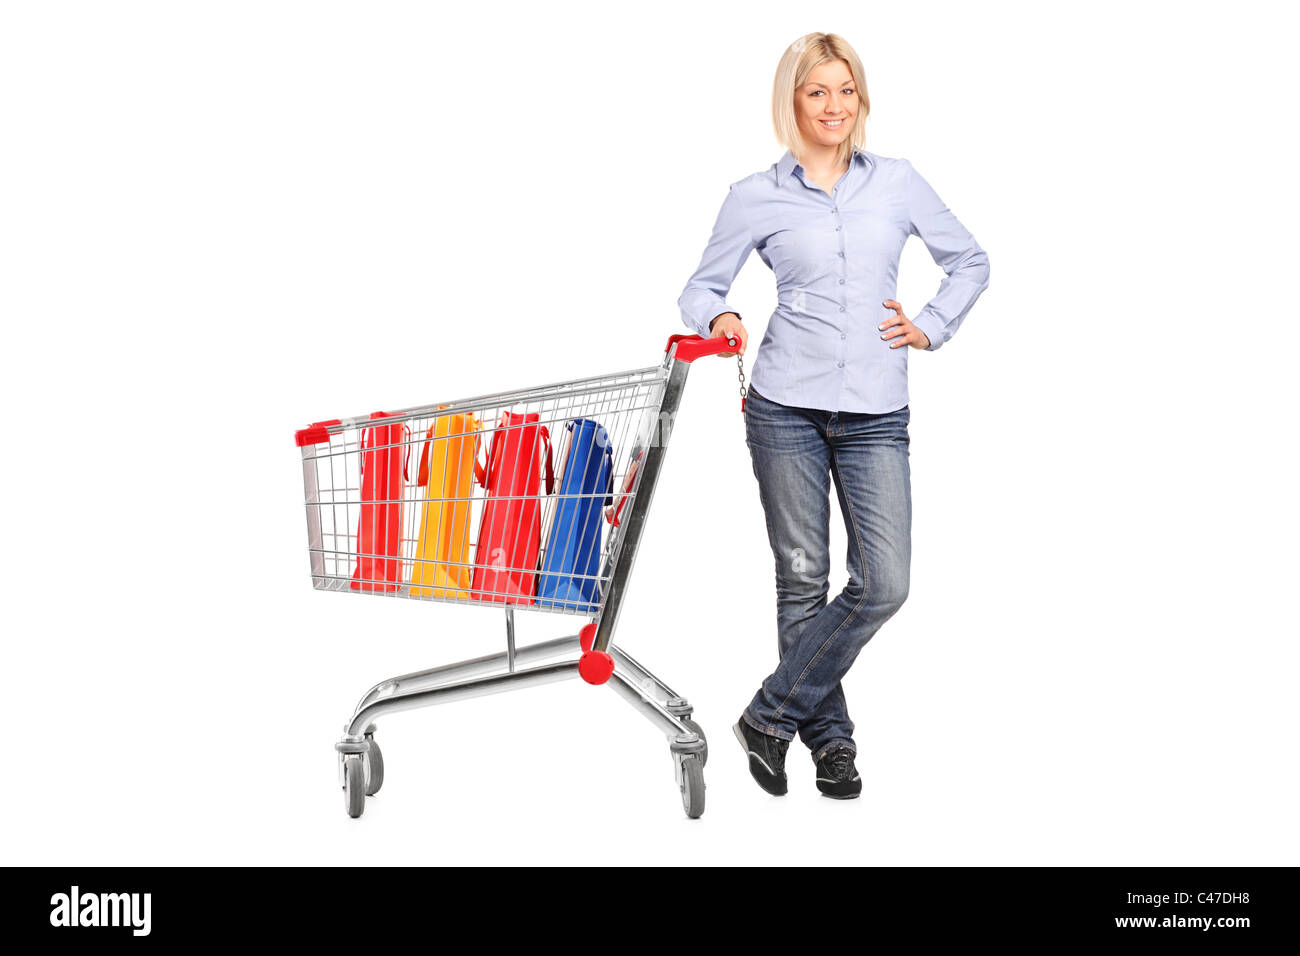 Smiling female posing next to a shopping cart full with shopping ...